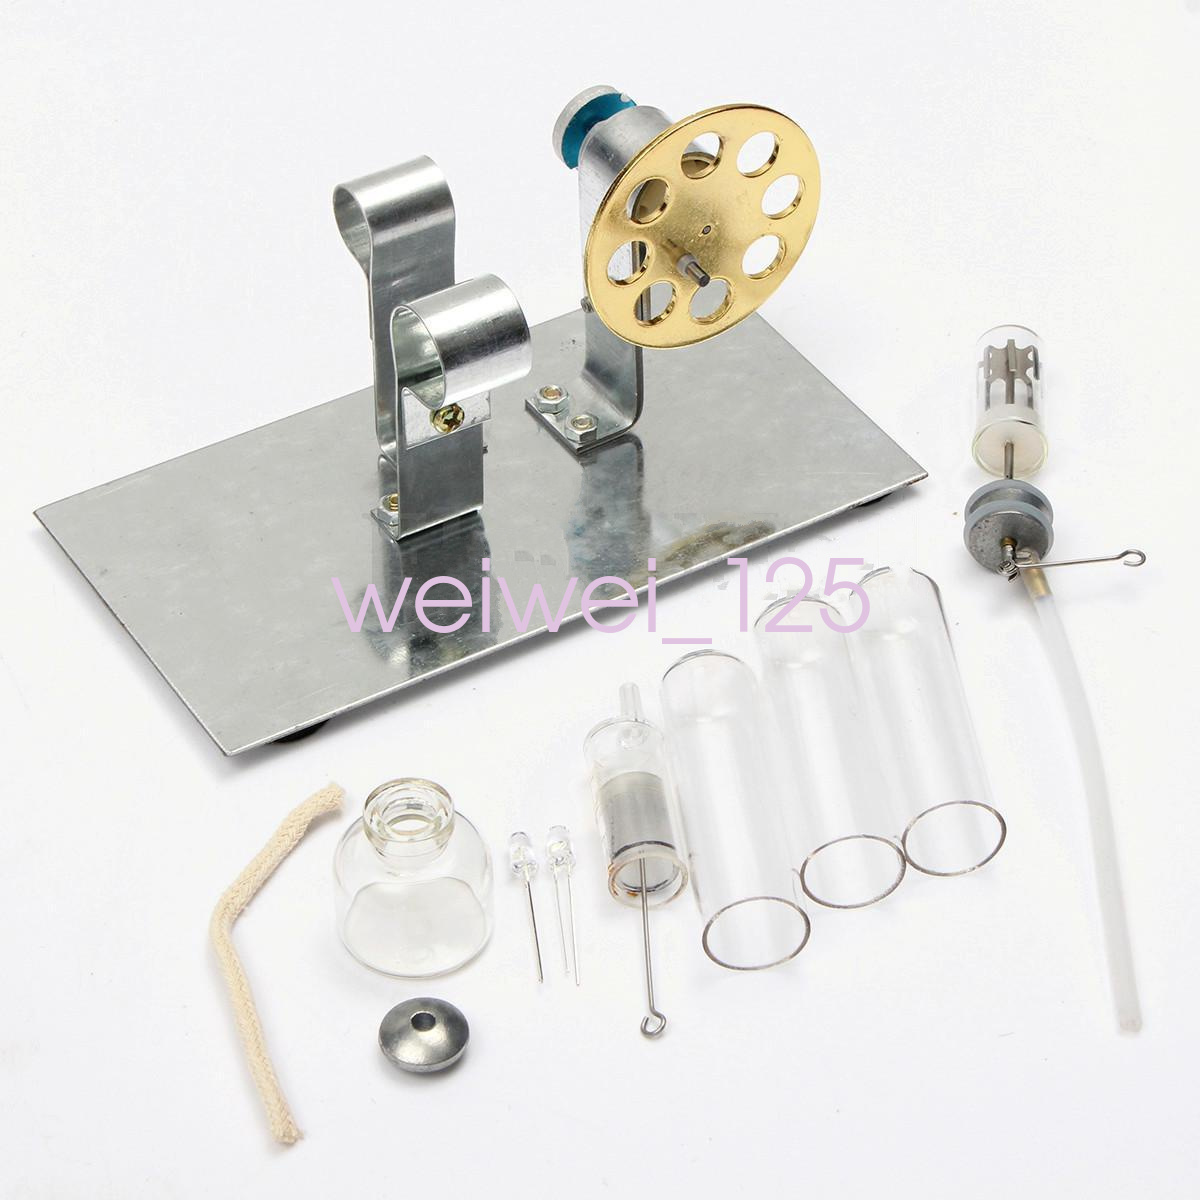 stirling engine overview Find great deals on ebay for stirling engine kits in models and kits tools,  supplies and engines shop with confidence  mini hot air stirling engine  motor model educational toy kits electricity us $3699 buy it now  all the  moving parts.